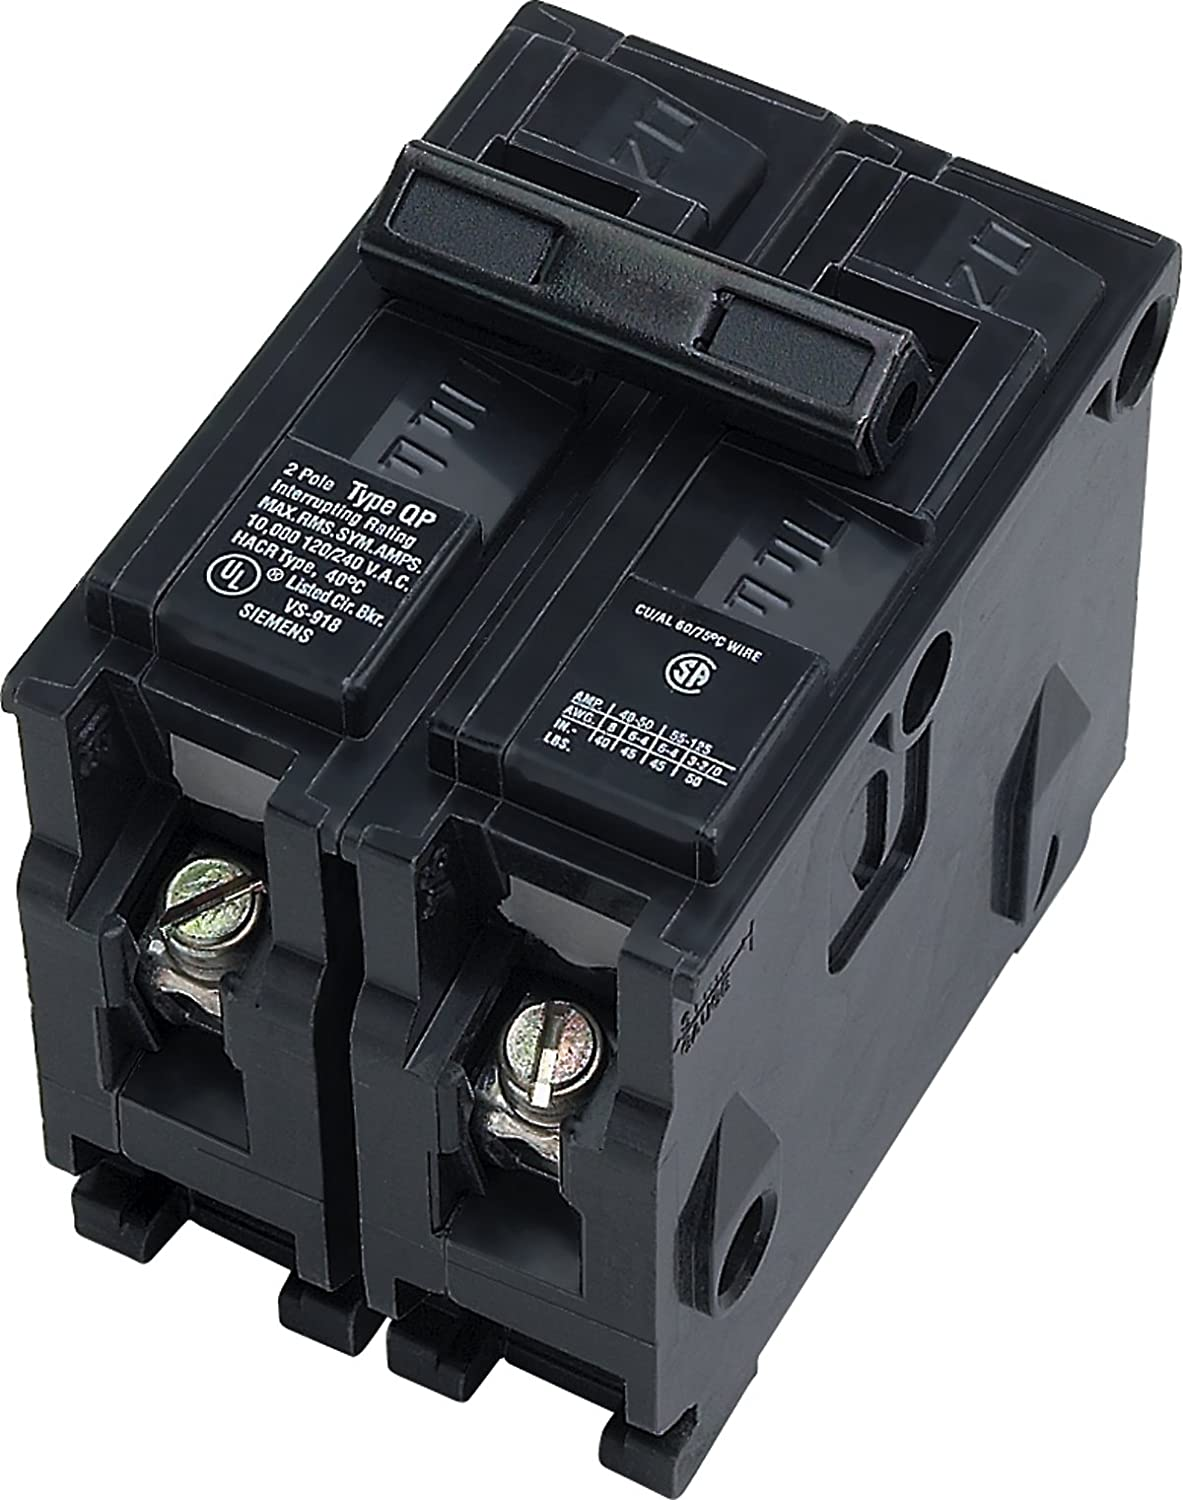 Sw Circuit Breaker Search For Wiring Diagrams All Points 421265 On Off Switch 30a 250v Siemens 60 Amp 2 Pole 240 V Plug In Fortnite Symbol